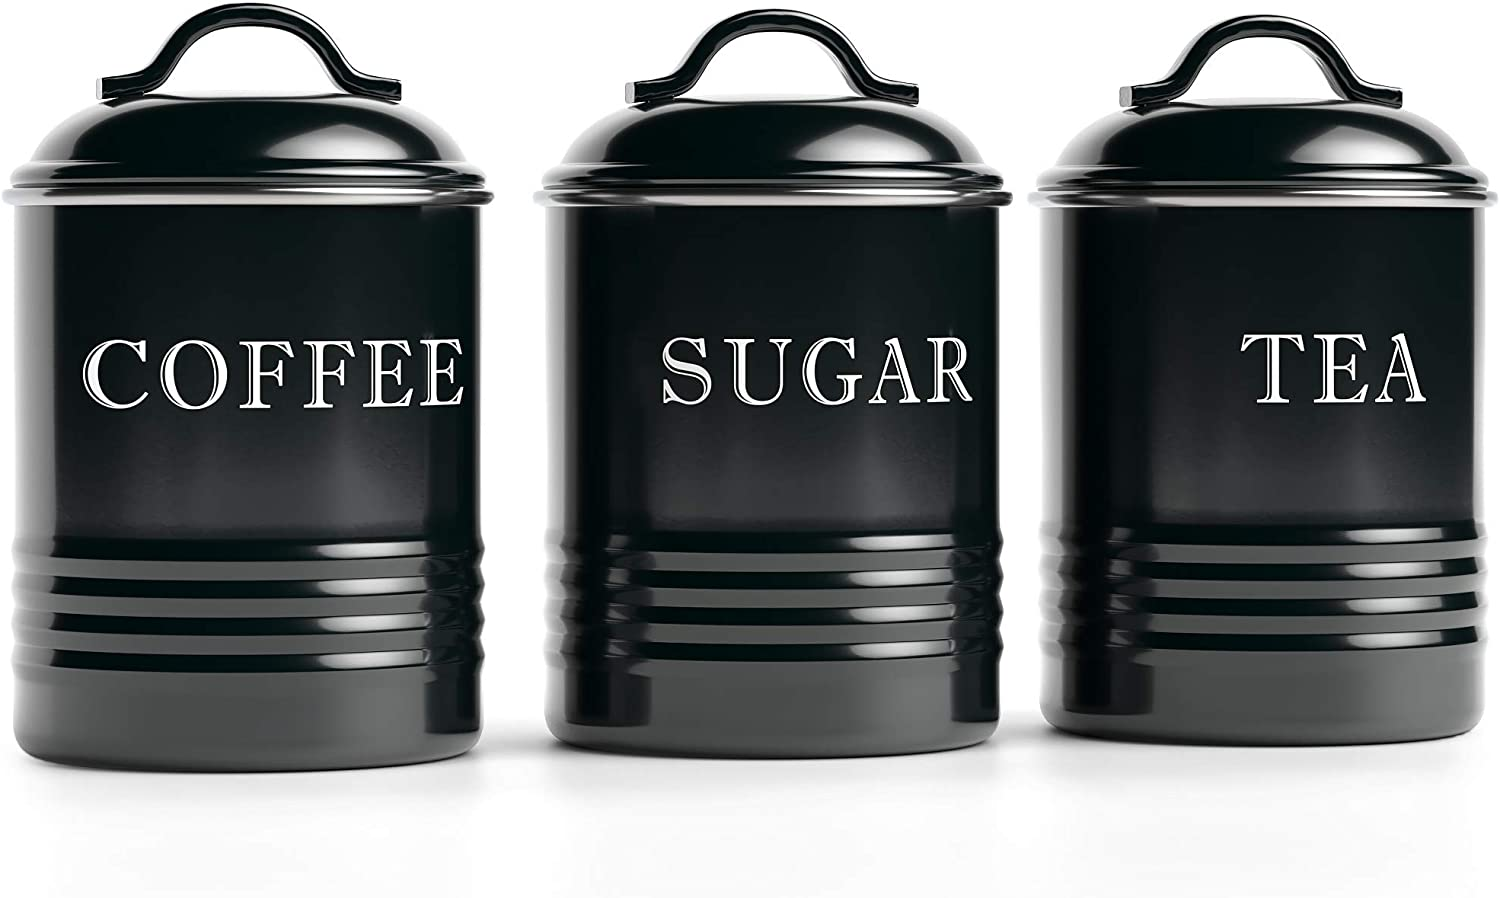 Amazon Com Barnyard Designs Airtight Kitchen Canister Decorations With Lids Black Metal Rustic Farmhouse Country Decor Containers For Sugar Coffee Tea Storage Set Of 3 4 X 6 75 Home Improvement